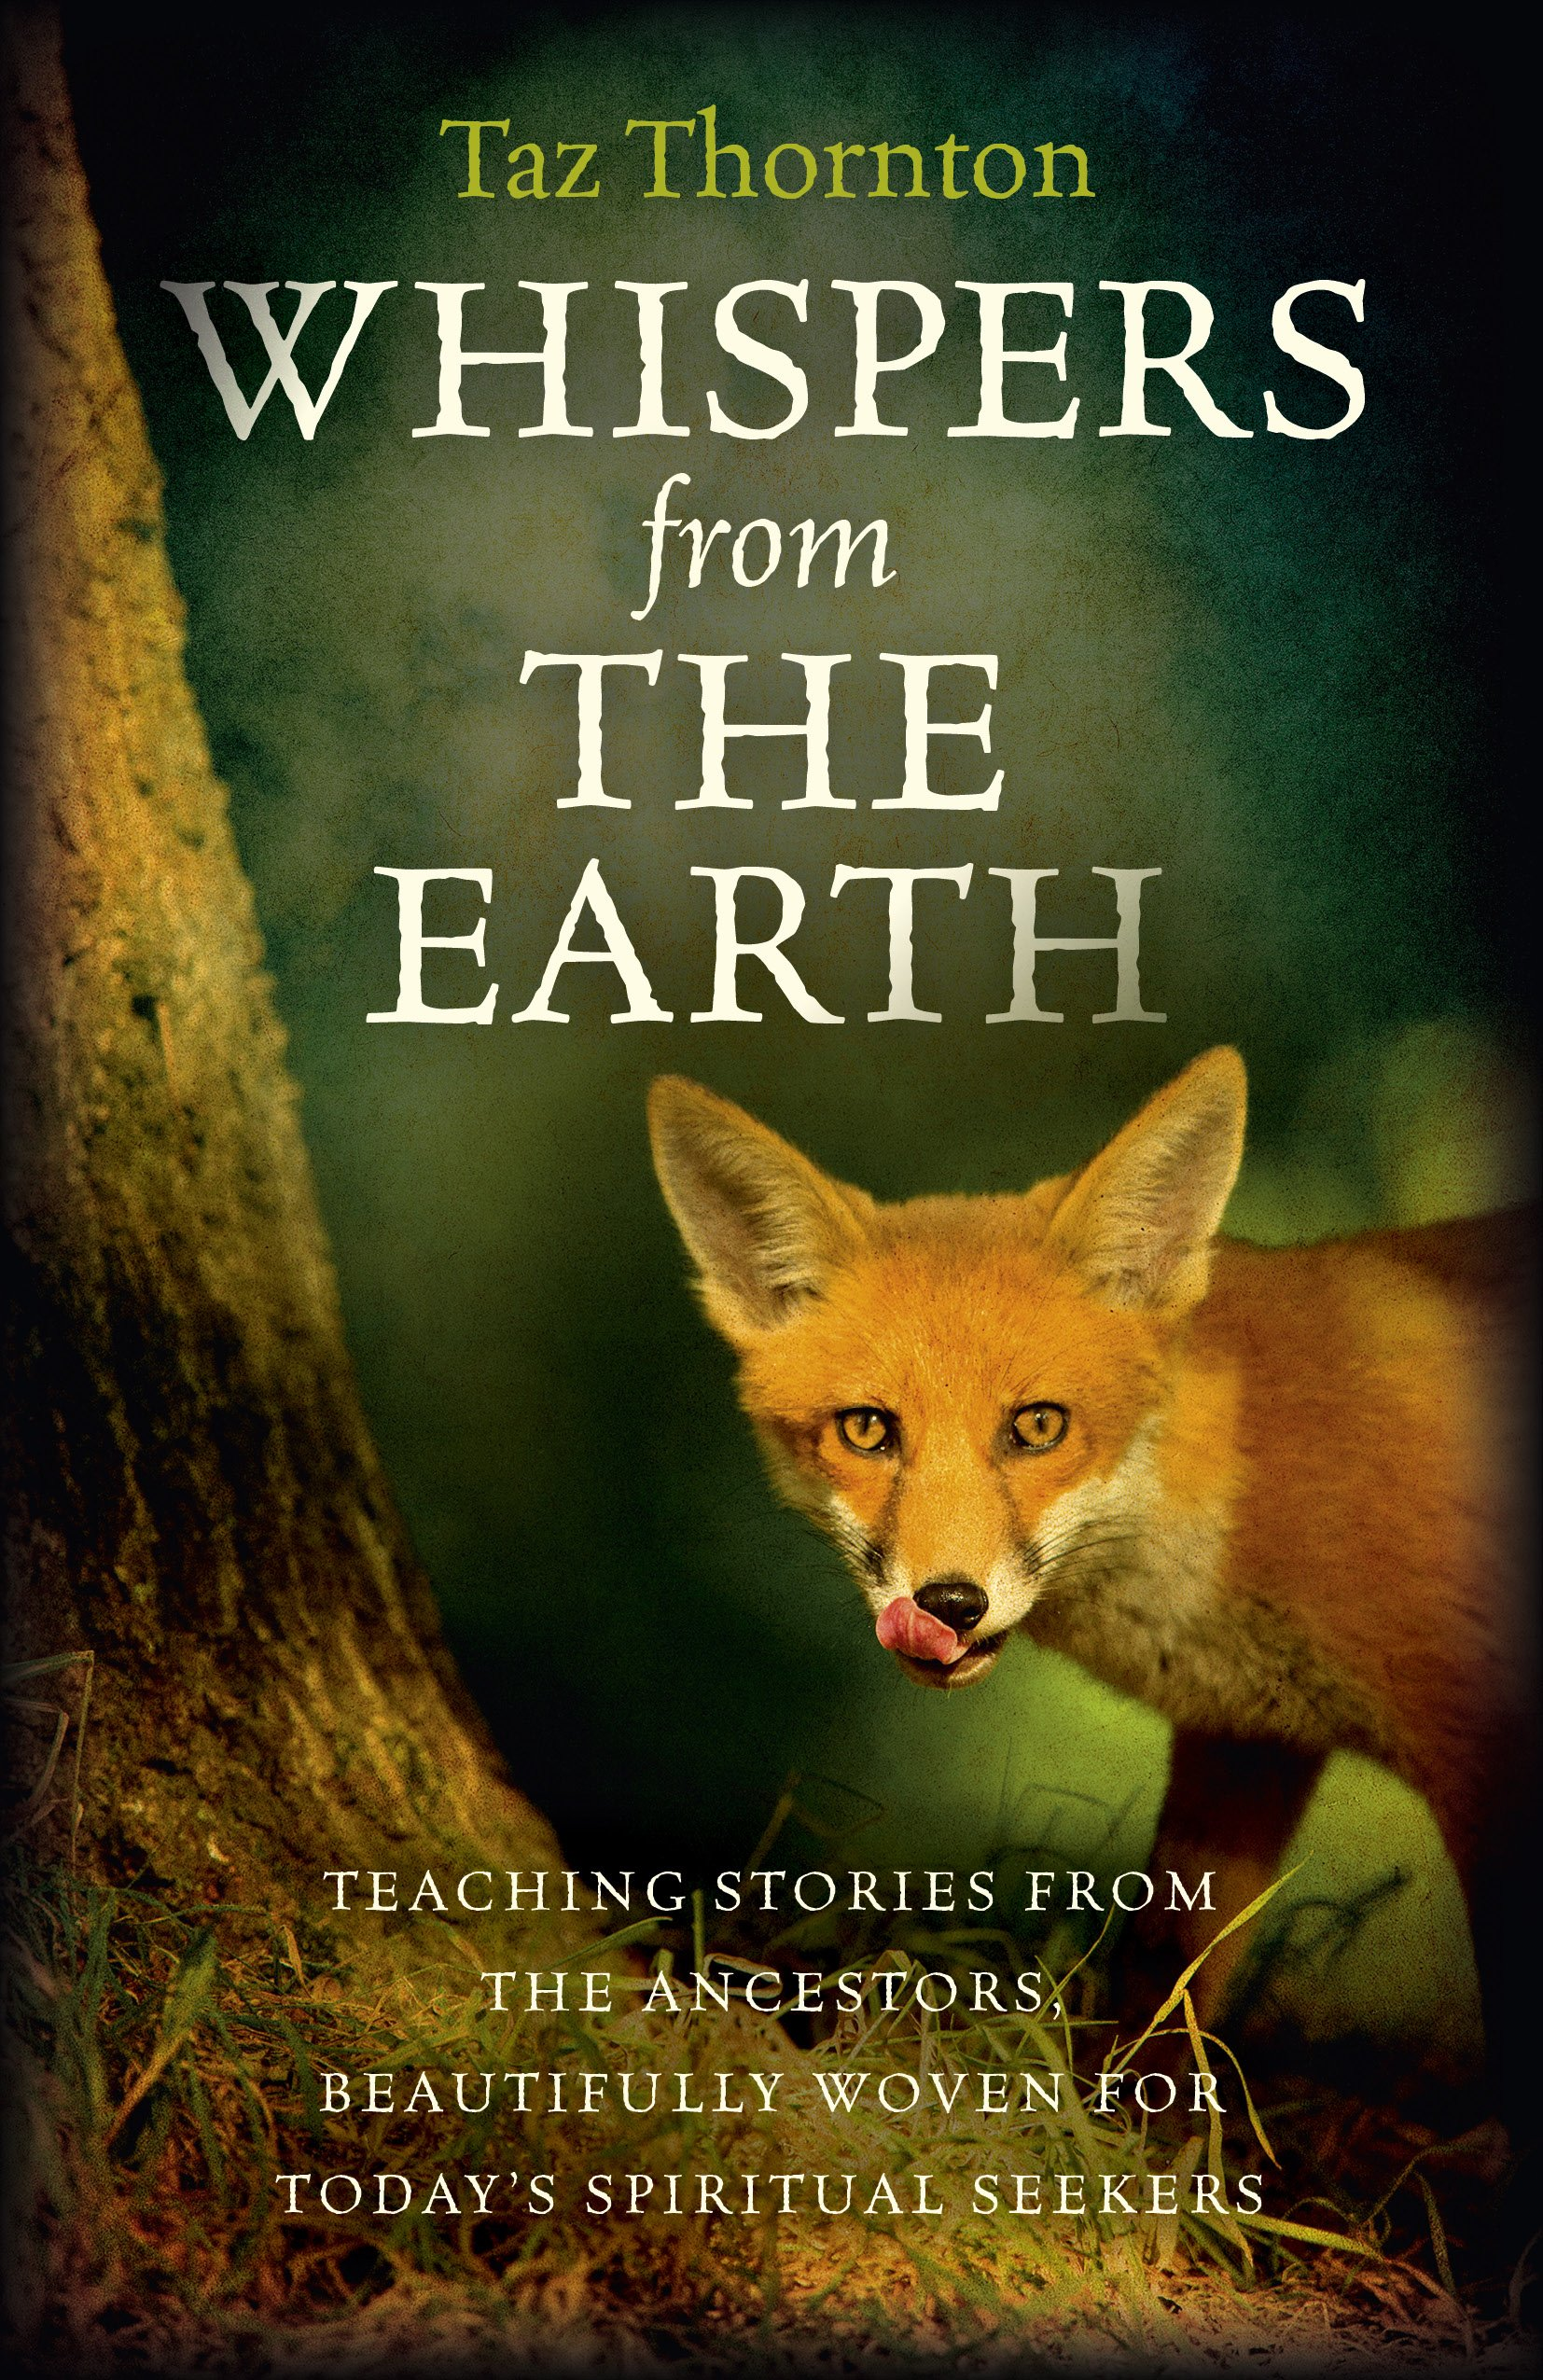 whispers from the earth teaching stories from the ancestors  whispers from the earth teaching stories from the ancestors beautifully woven for today s spiritual seekers taz thornton 9781782793823 com